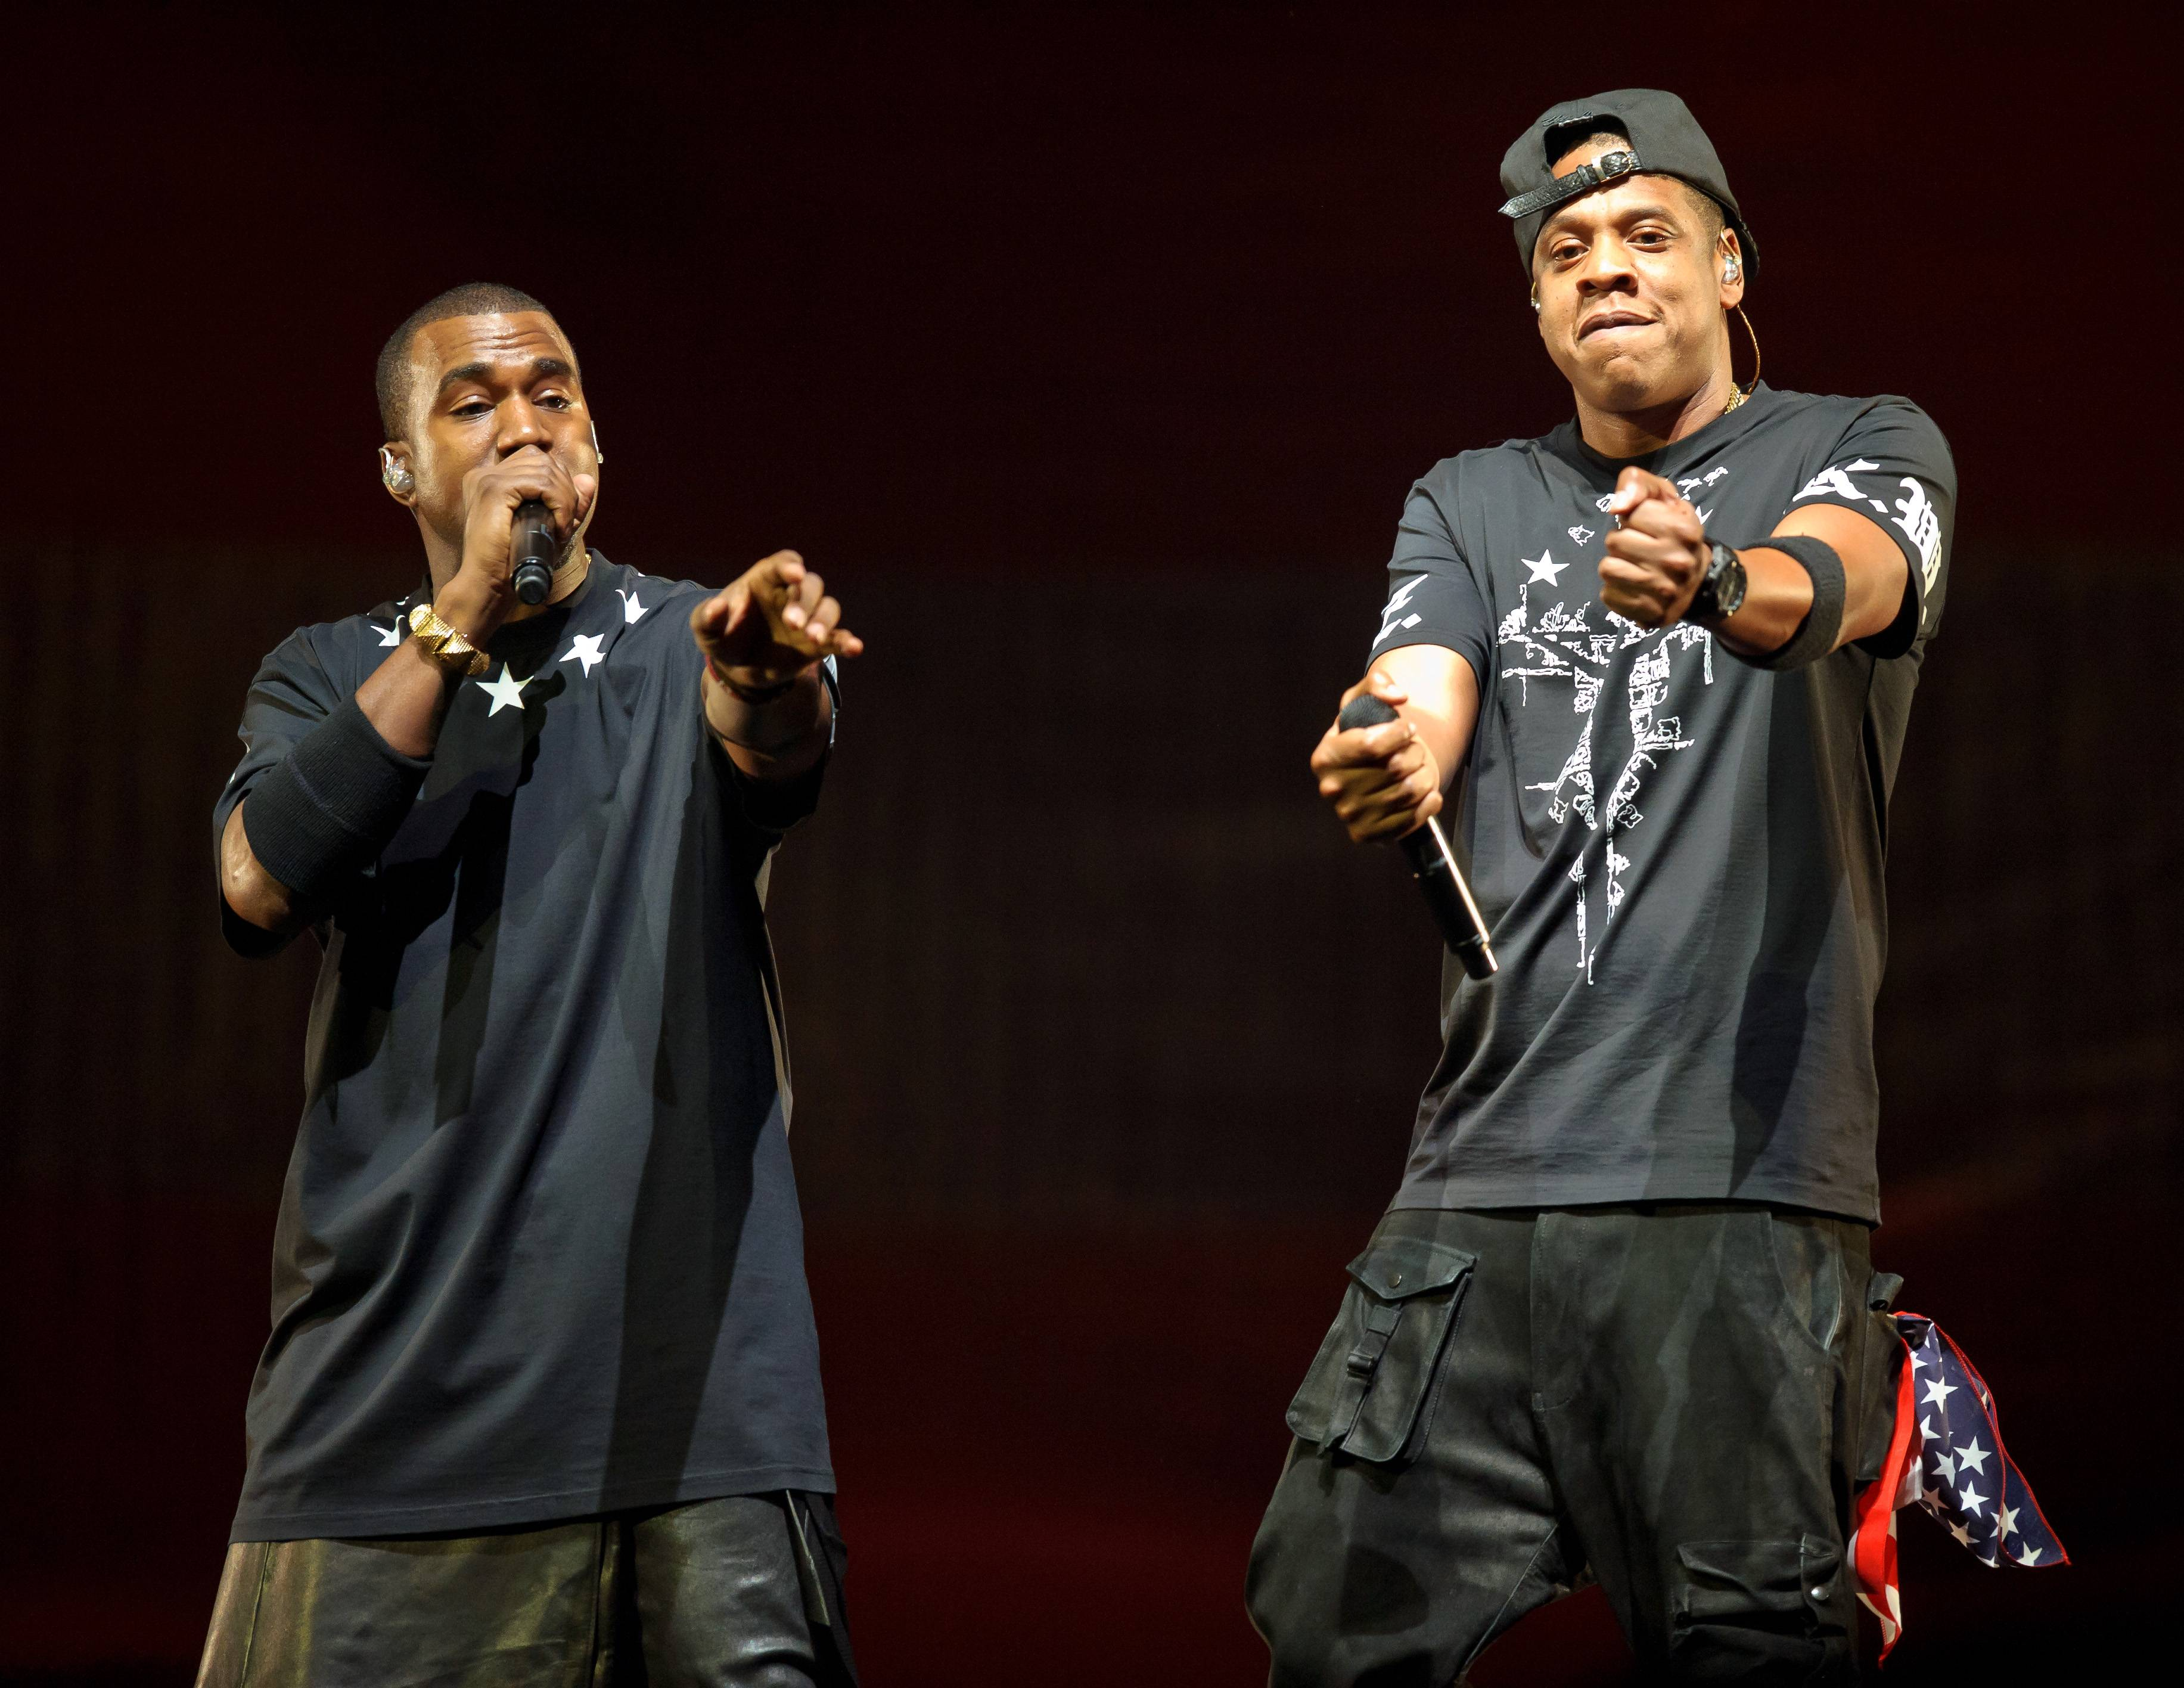 """The Throne - Jay-Z's and Kanye West's kingly duo is set to rule over the BET Awards with a whopping five nominations: two for Video of the Year (for """"Otis"""" and """"Paris""""), one for Best Group, one for Best Collaboration (for """"Otis""""), and one for the Coca-Cola Viewers' Choice Award (for """"Otis"""").(Photo: Kyle Gustafson/For The Washington Post via Getty Images)"""